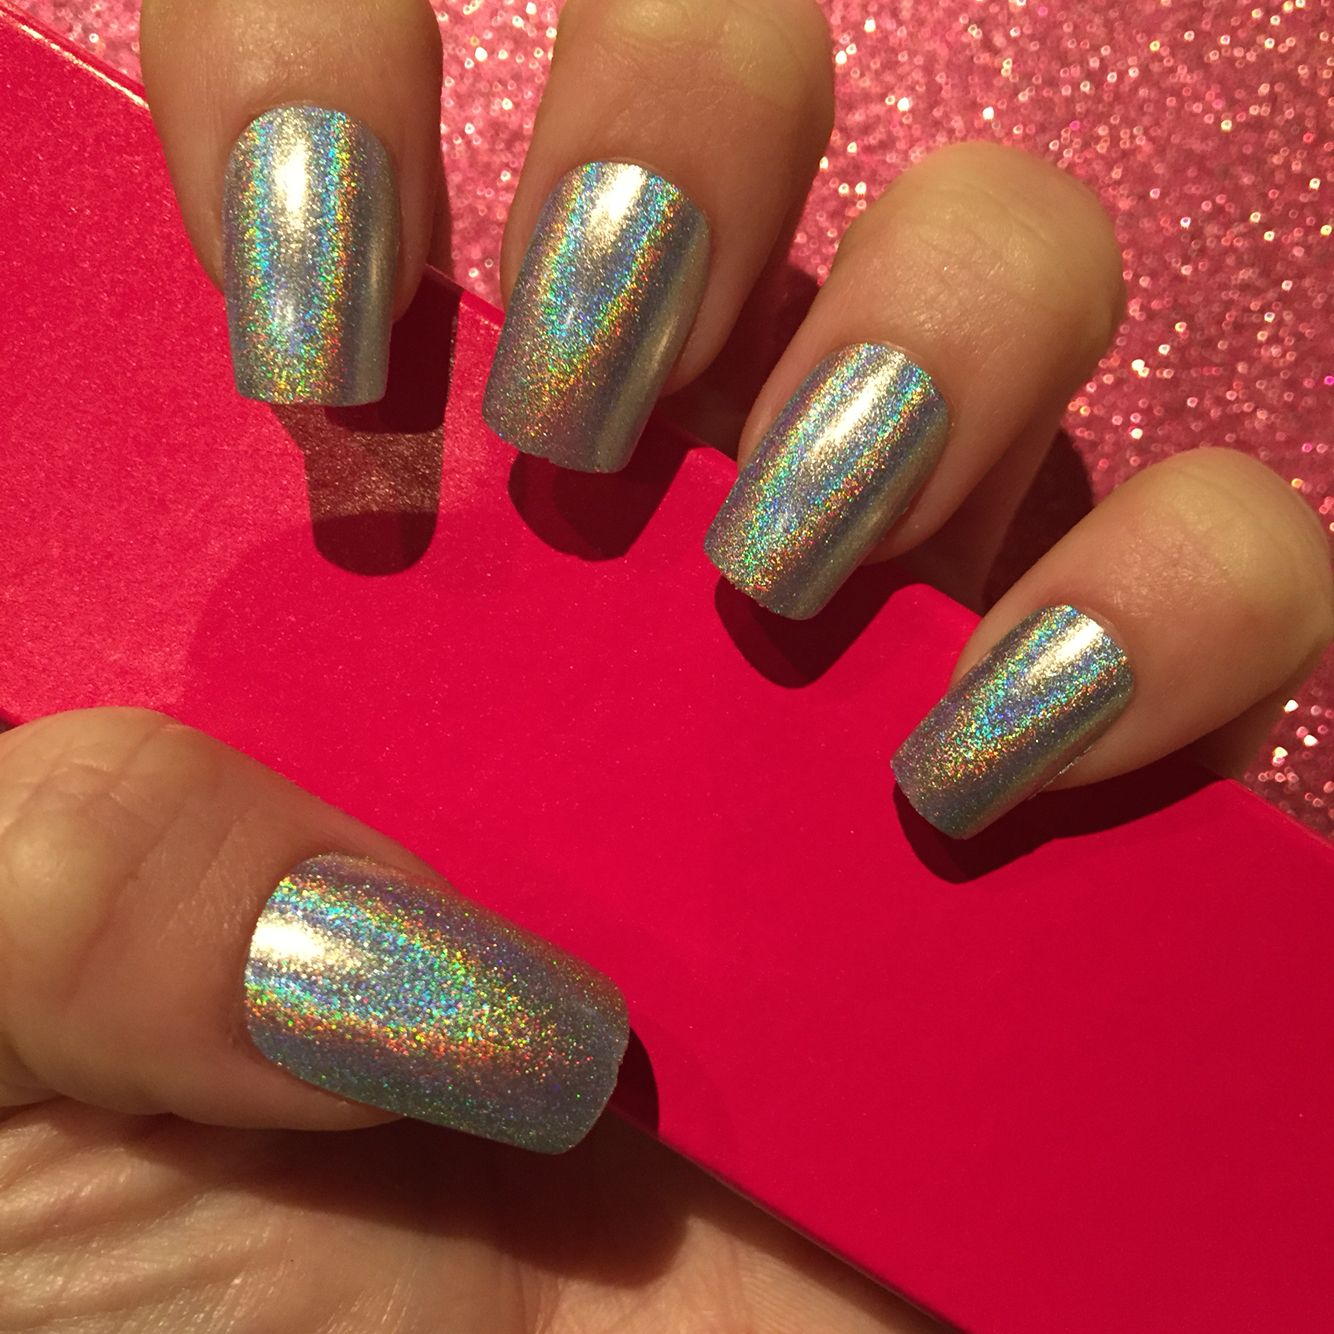 Silver holographic square nails